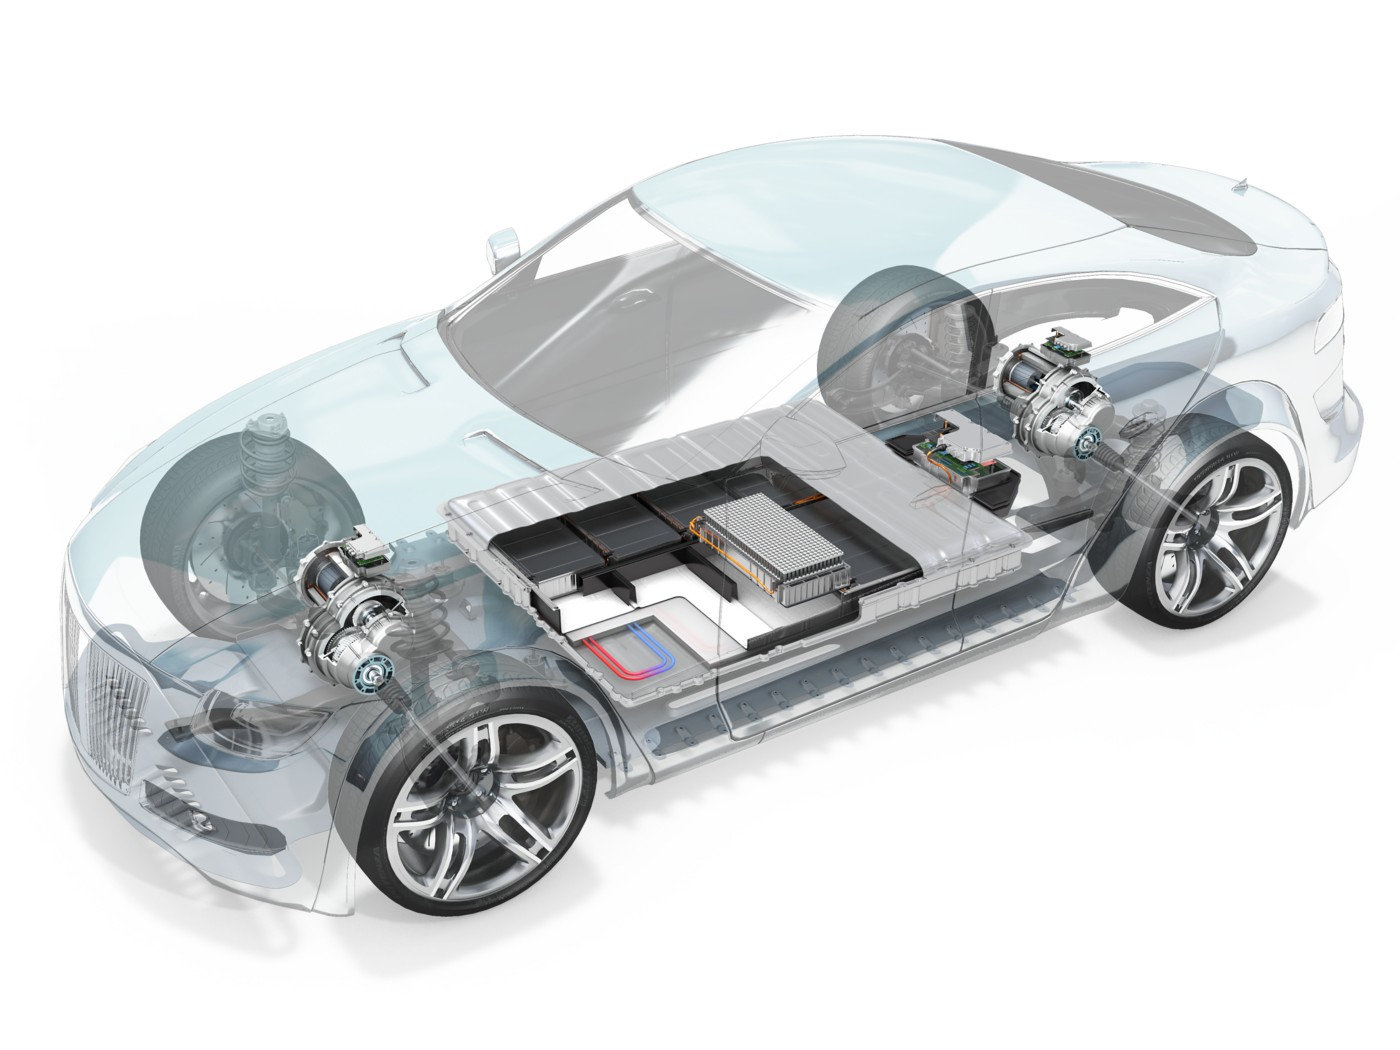 Electric vehicle interior with powertrain components exposed